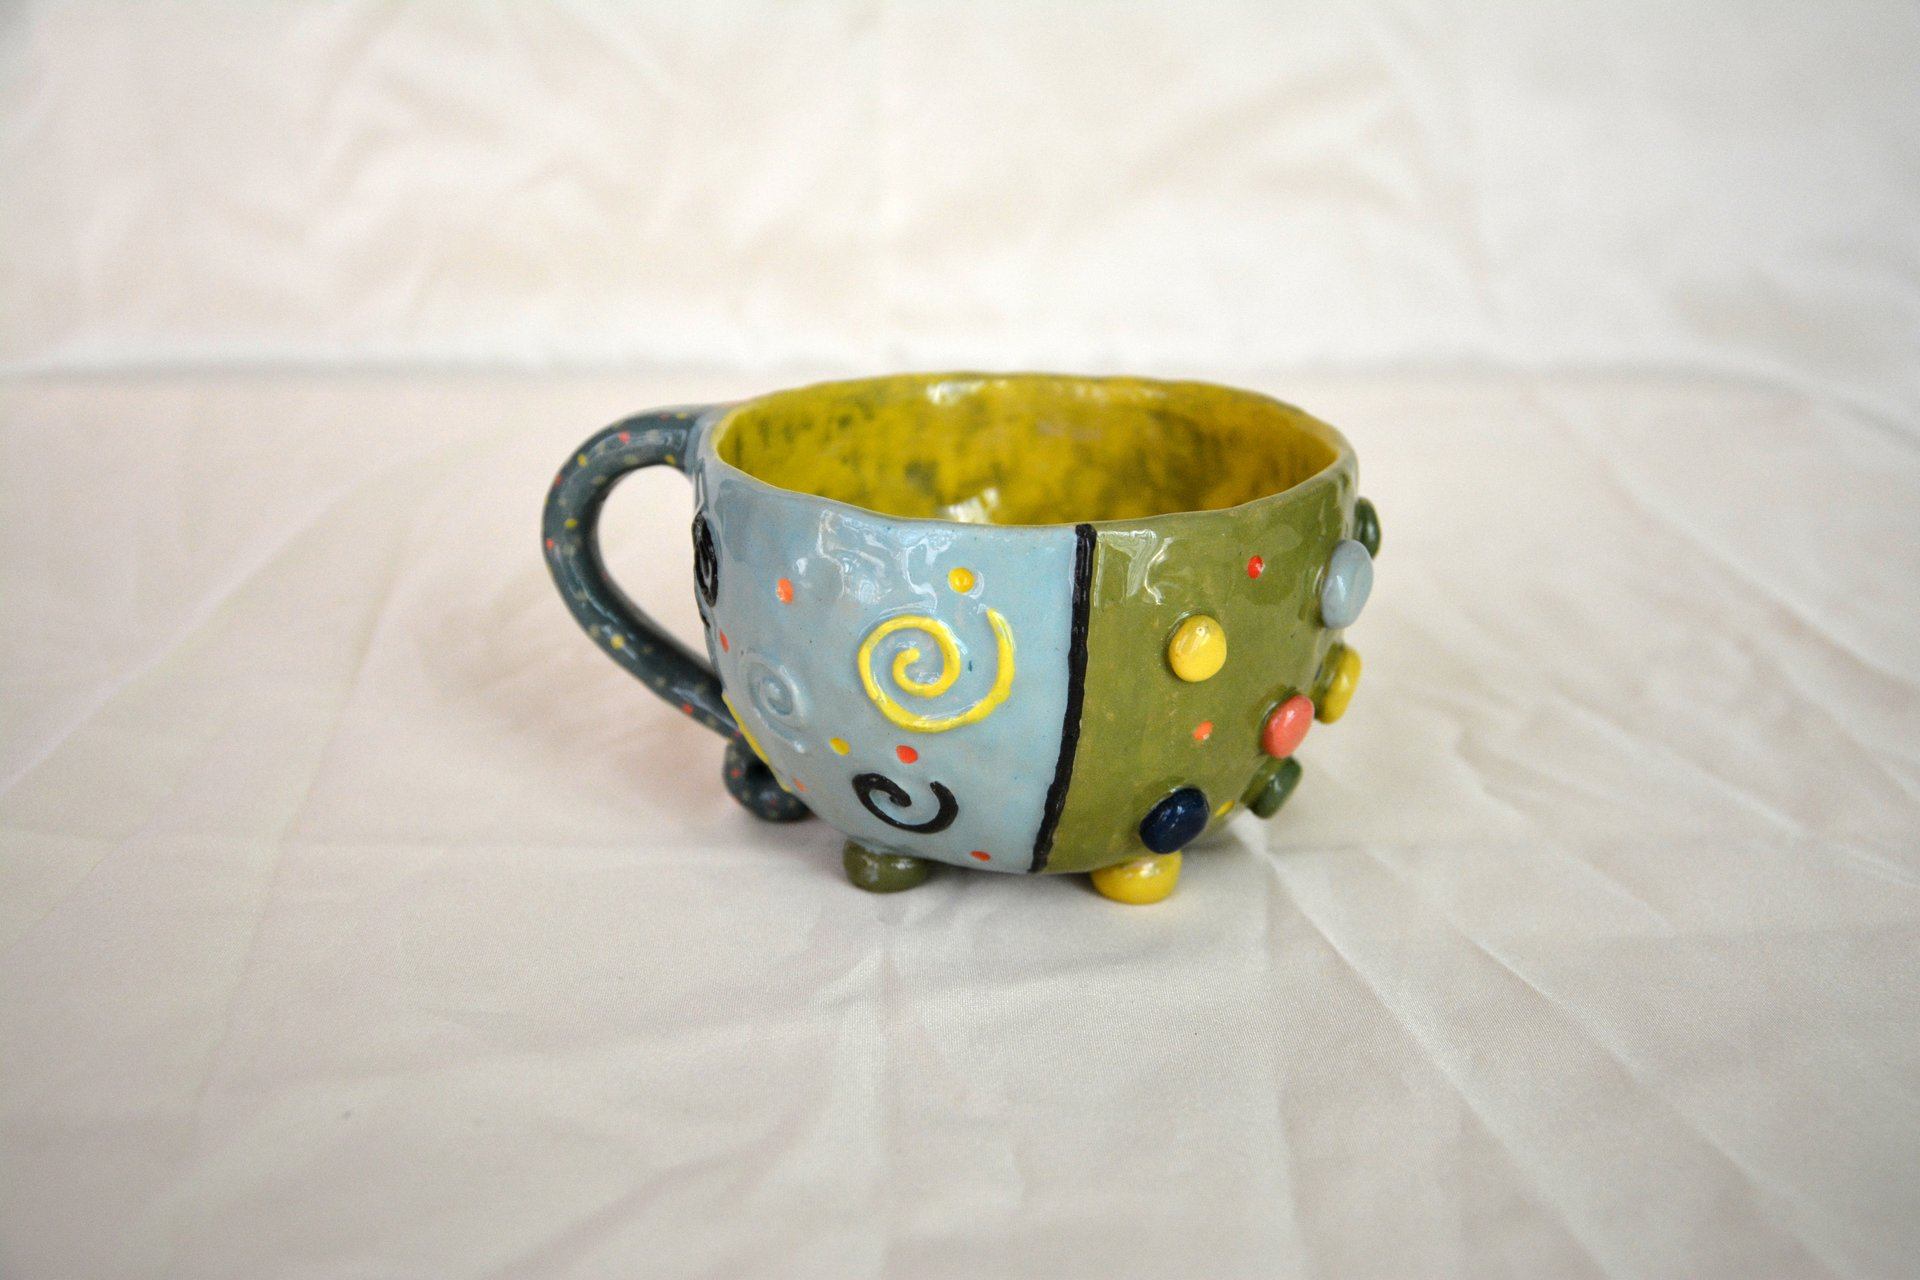 Bright color mug - Cups, glasses, mugs, height - 9 cm, volume - 350 ml, photo 2 of 3.